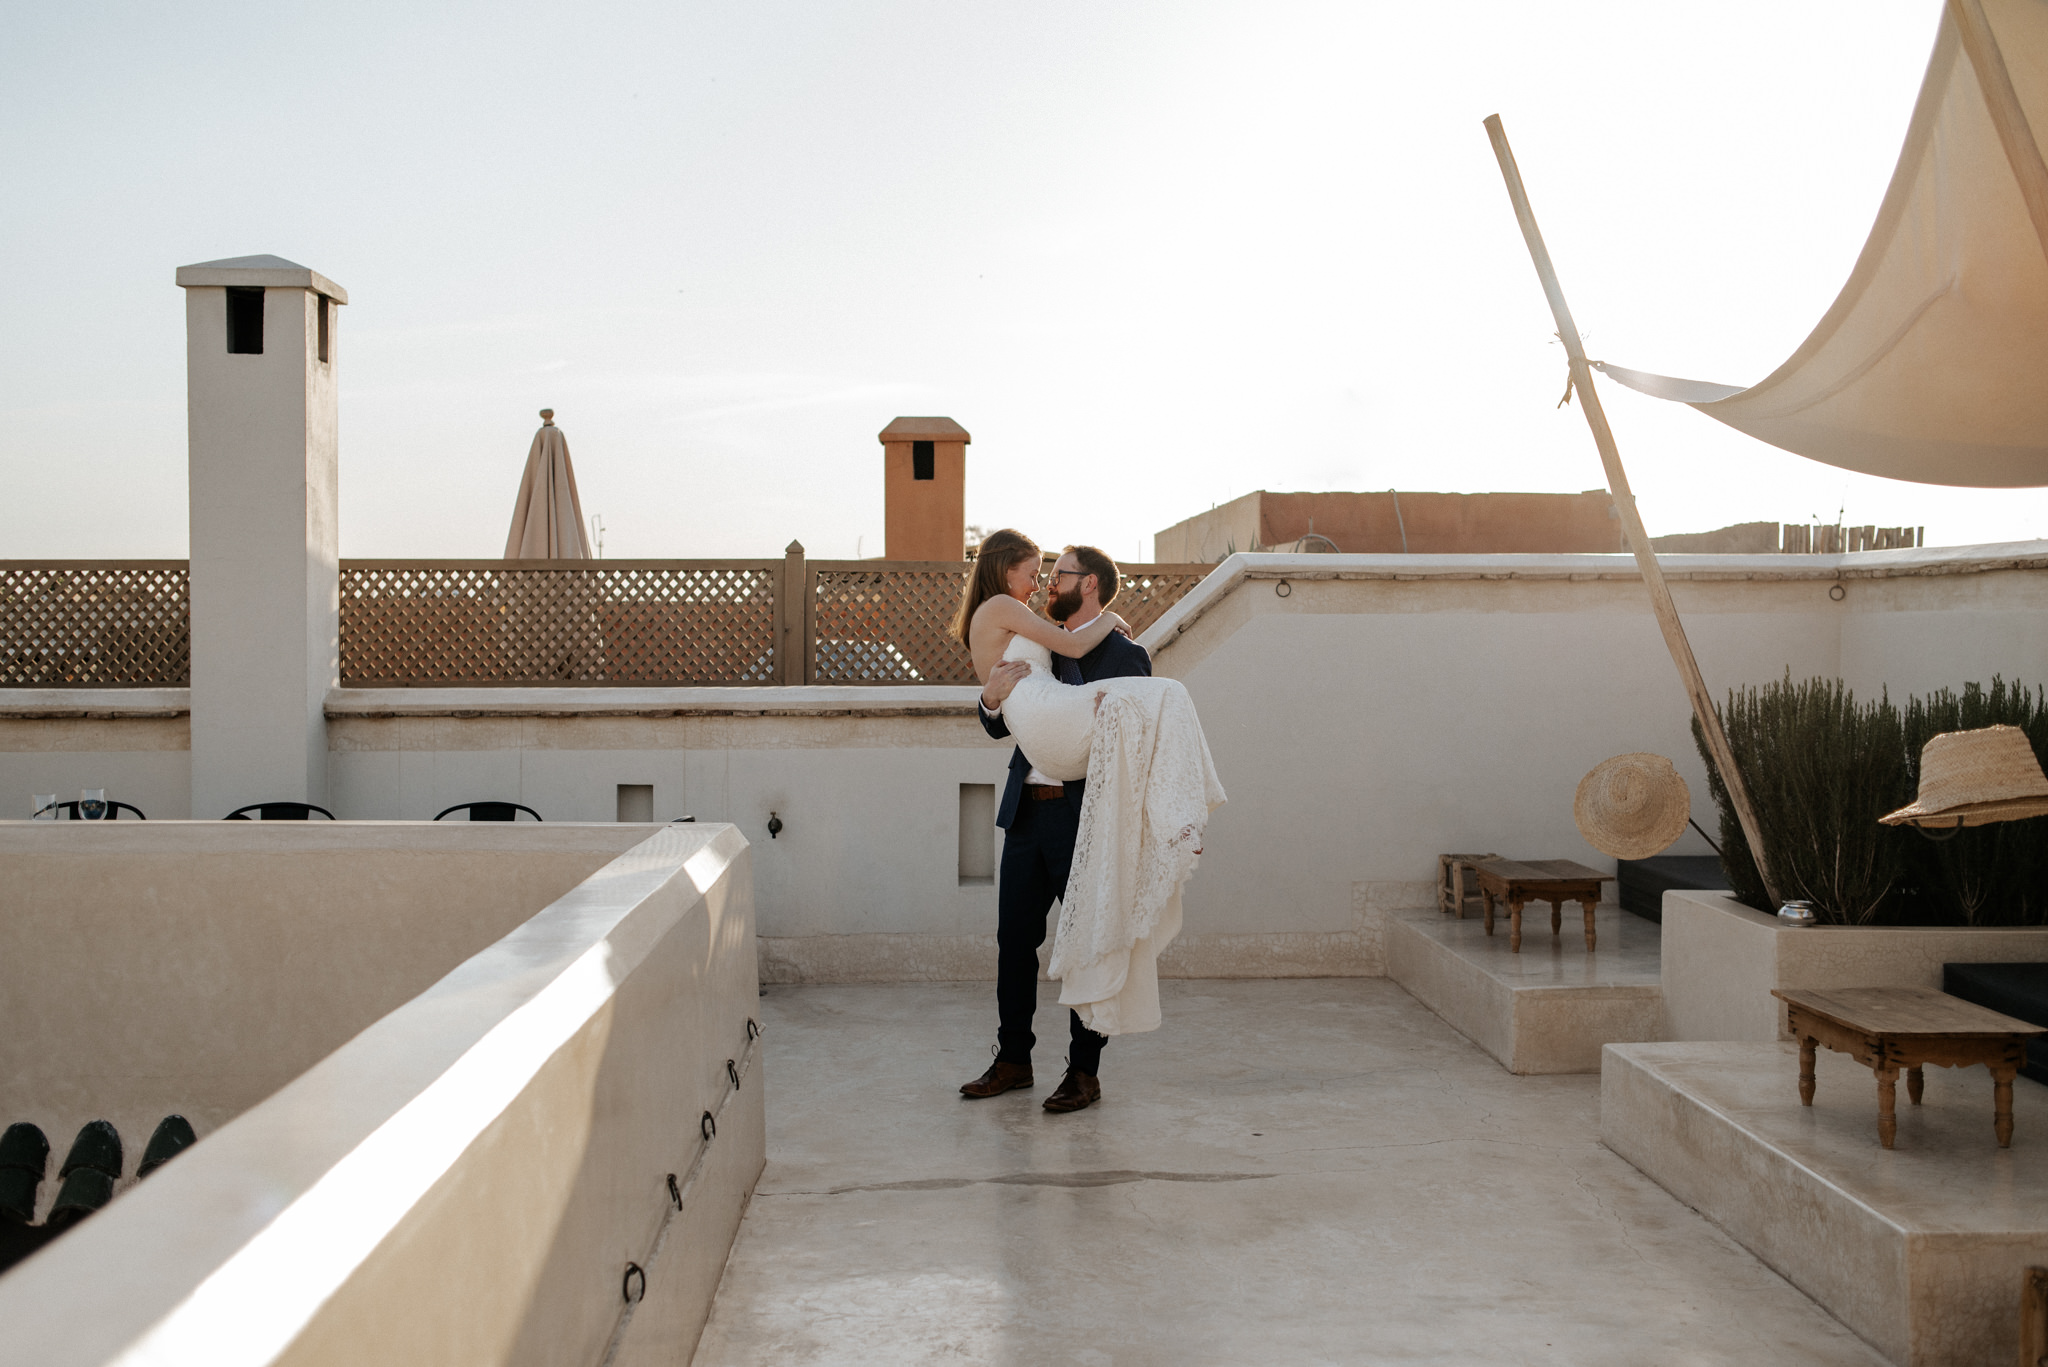 Groom carrying bride on rooftop at sunset at Riad 42